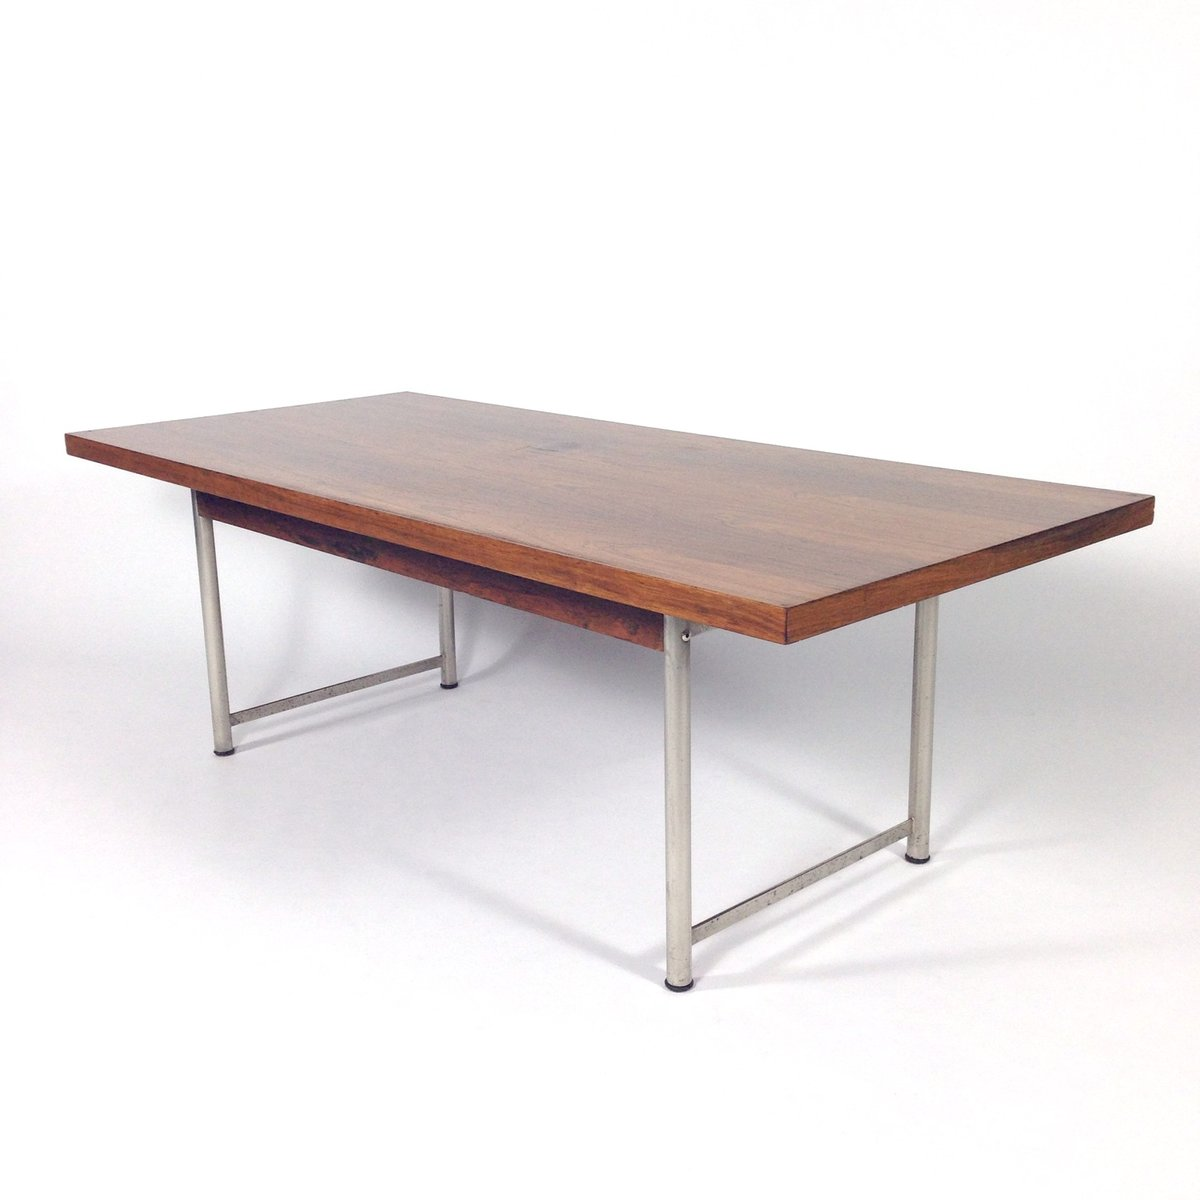 Rosewood Coffee Table By Cees Braakman For Pastoe 1950s For Sale At Pamono